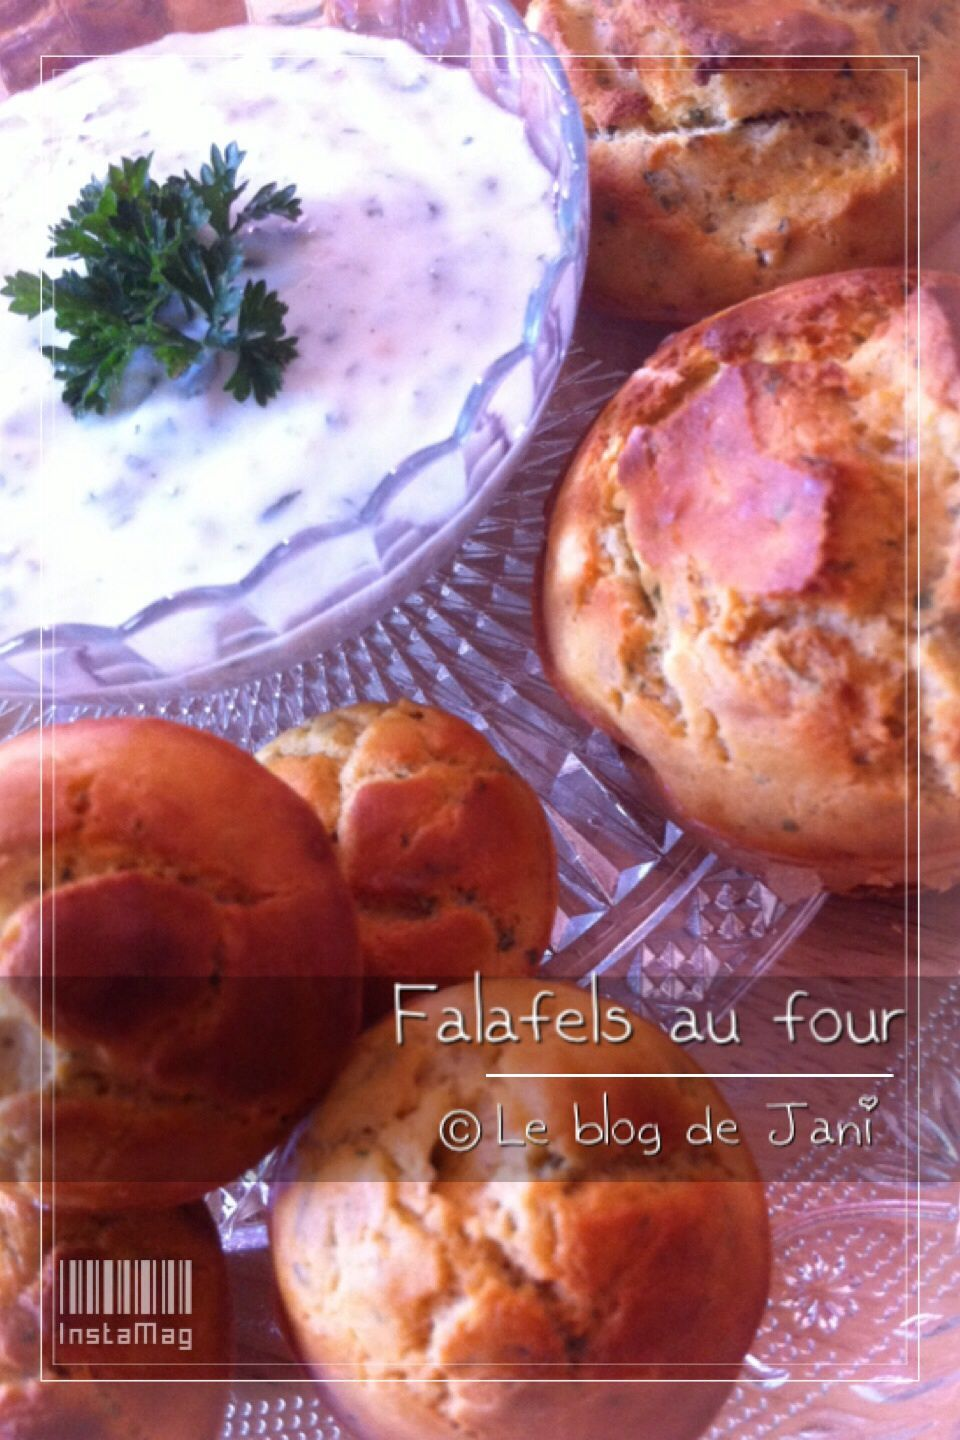 Falafels au four &quot&#x3B;light sans friture&quot&#x3B;